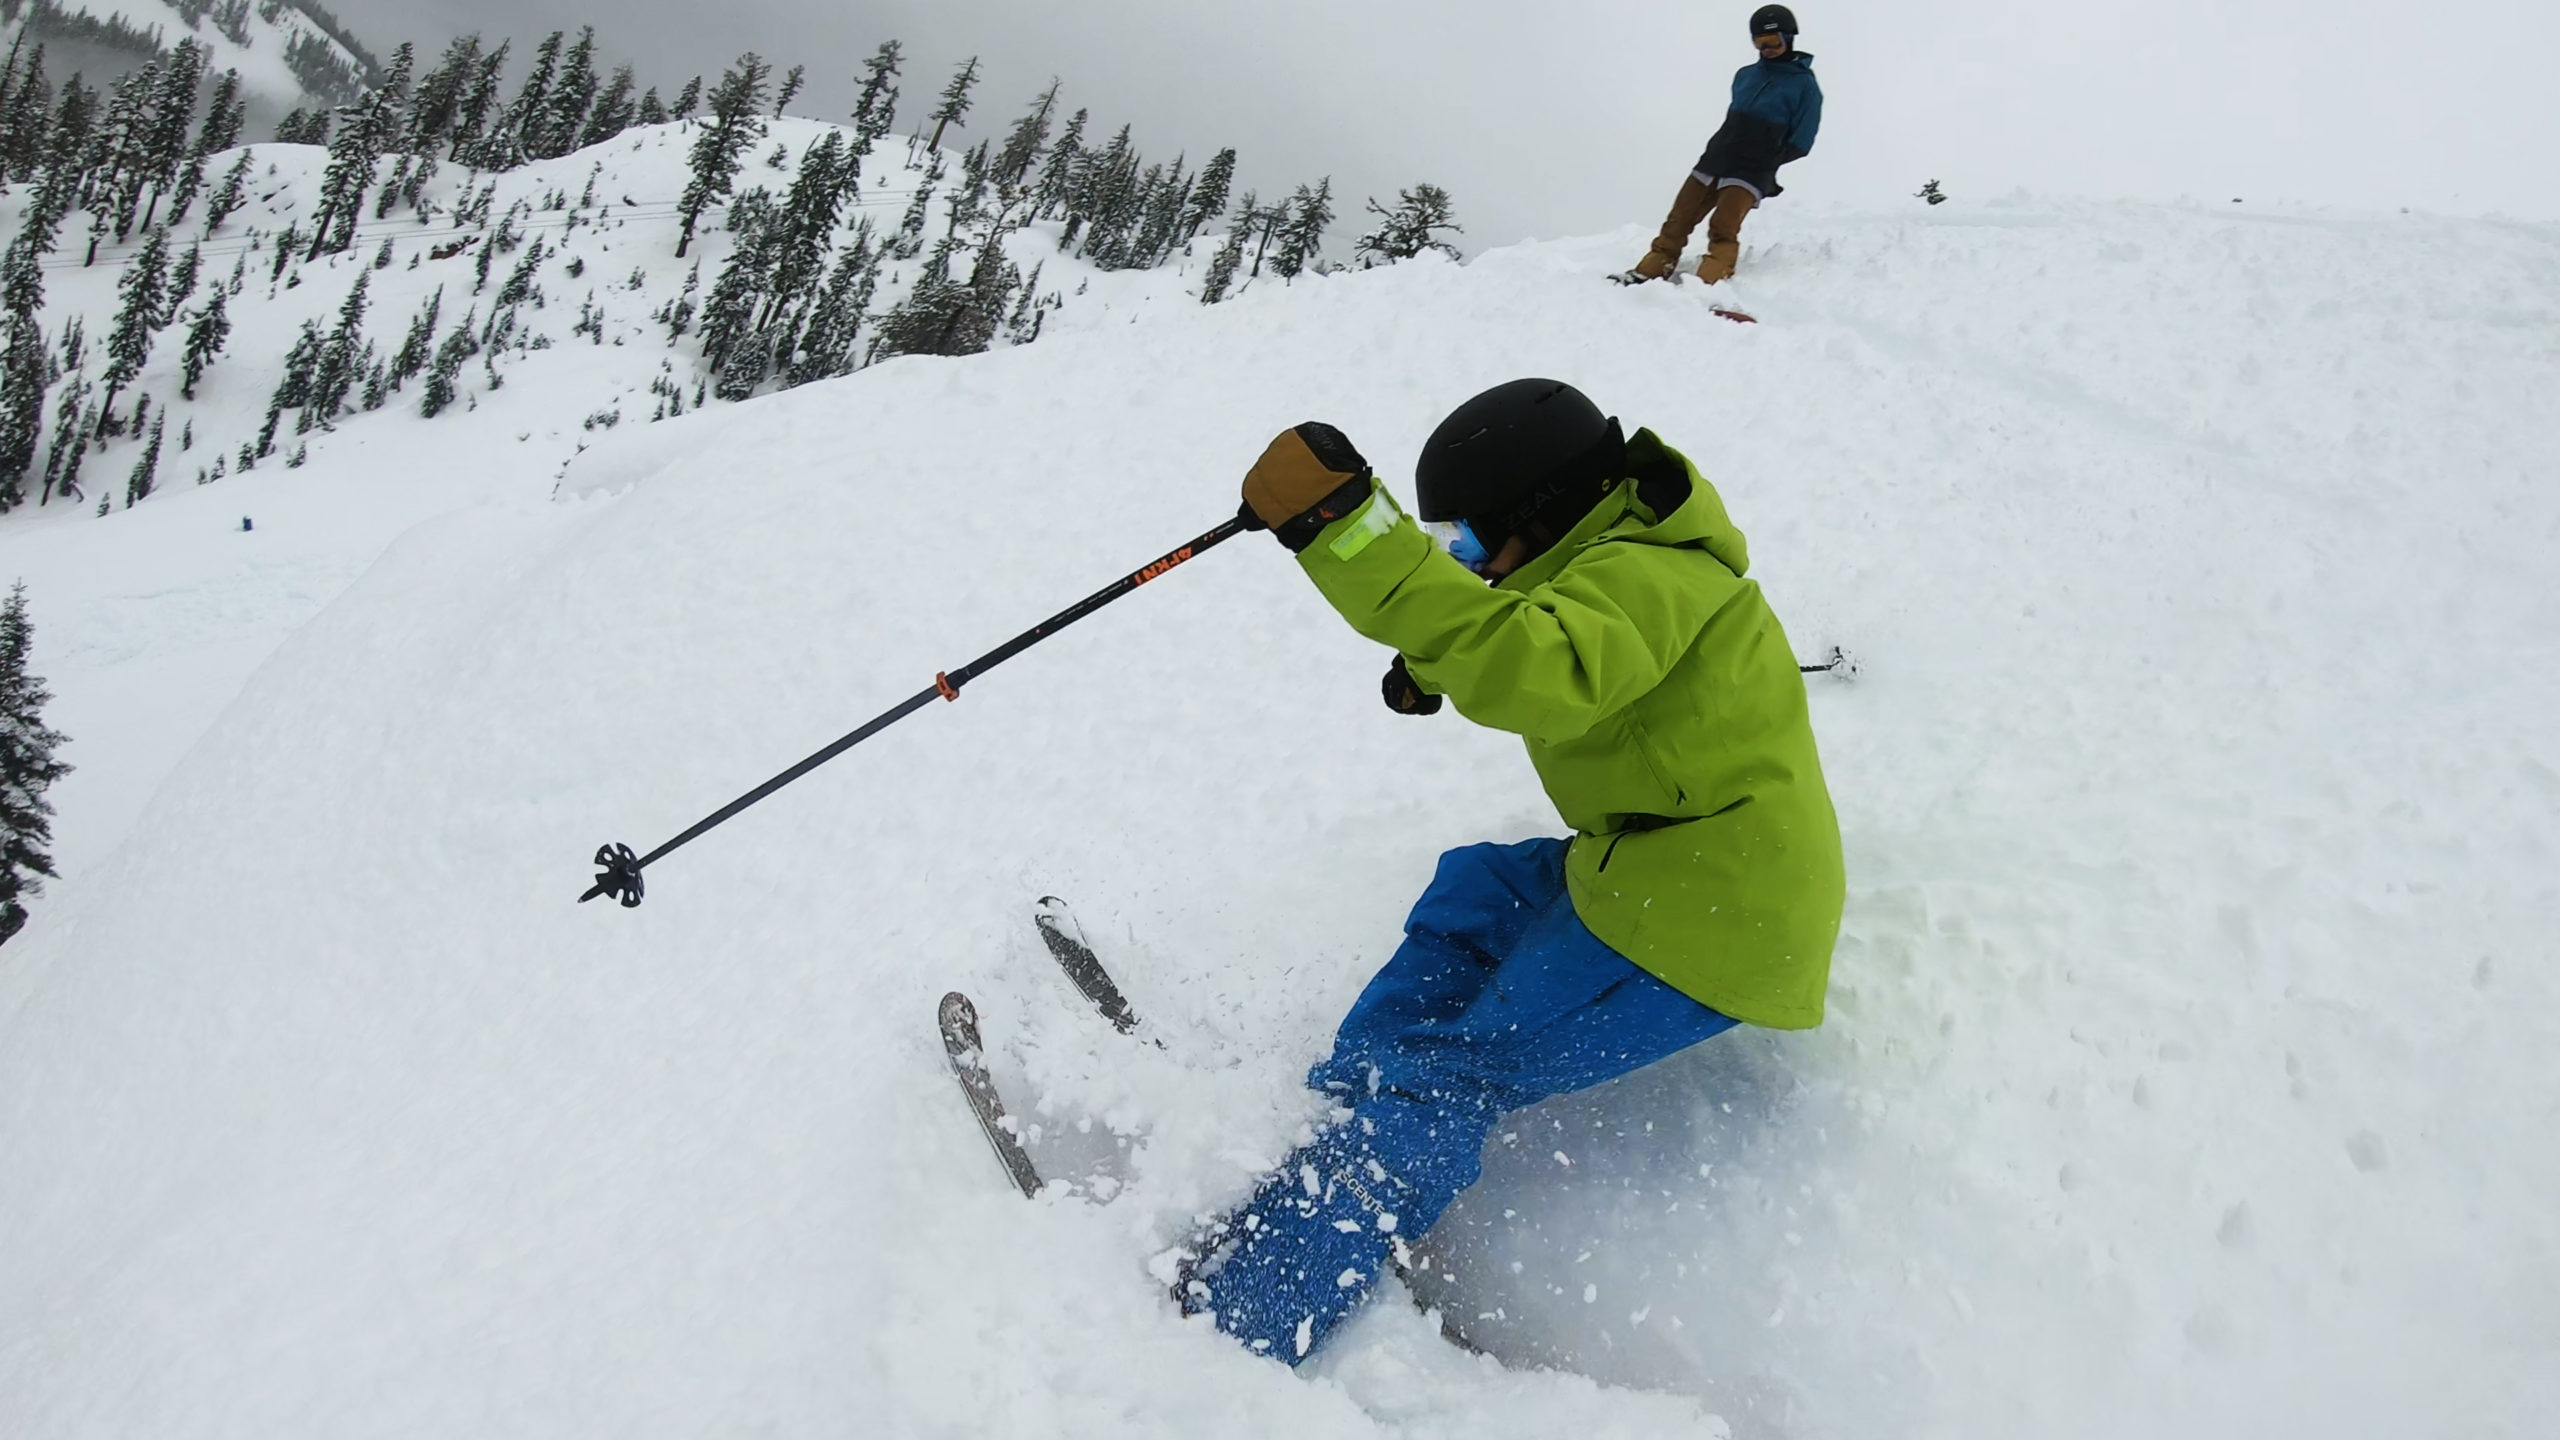 skier turning in powder at Alpine Meadows